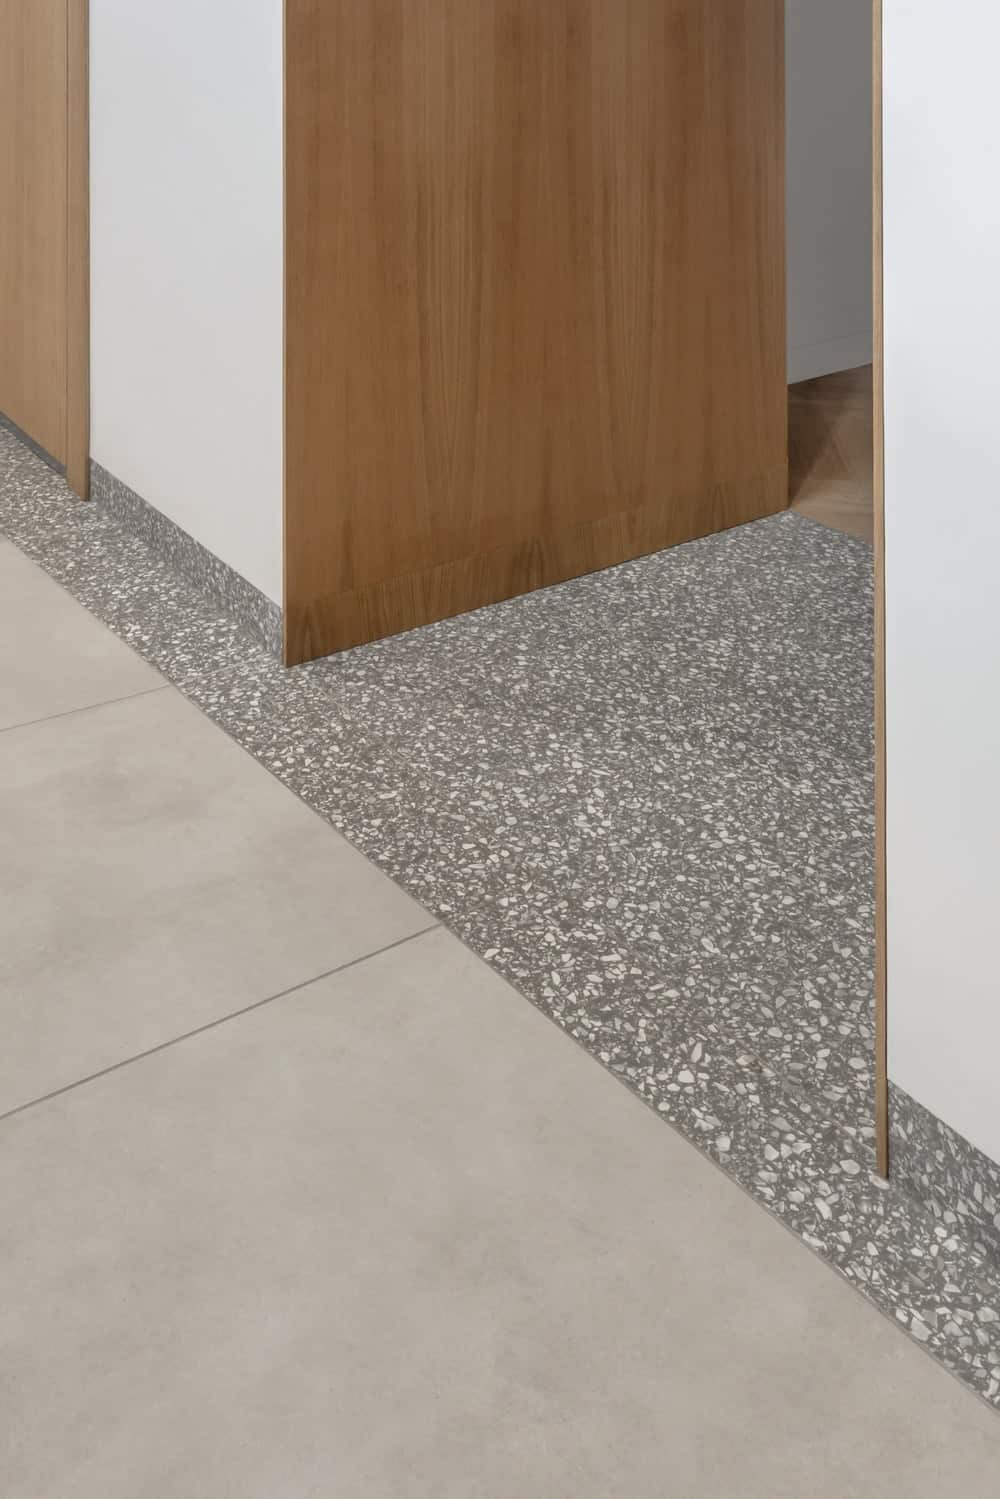 This is a close look at the foot of the hallway with a patterned gray floor contrasted by the wood-toned panel of the wall.